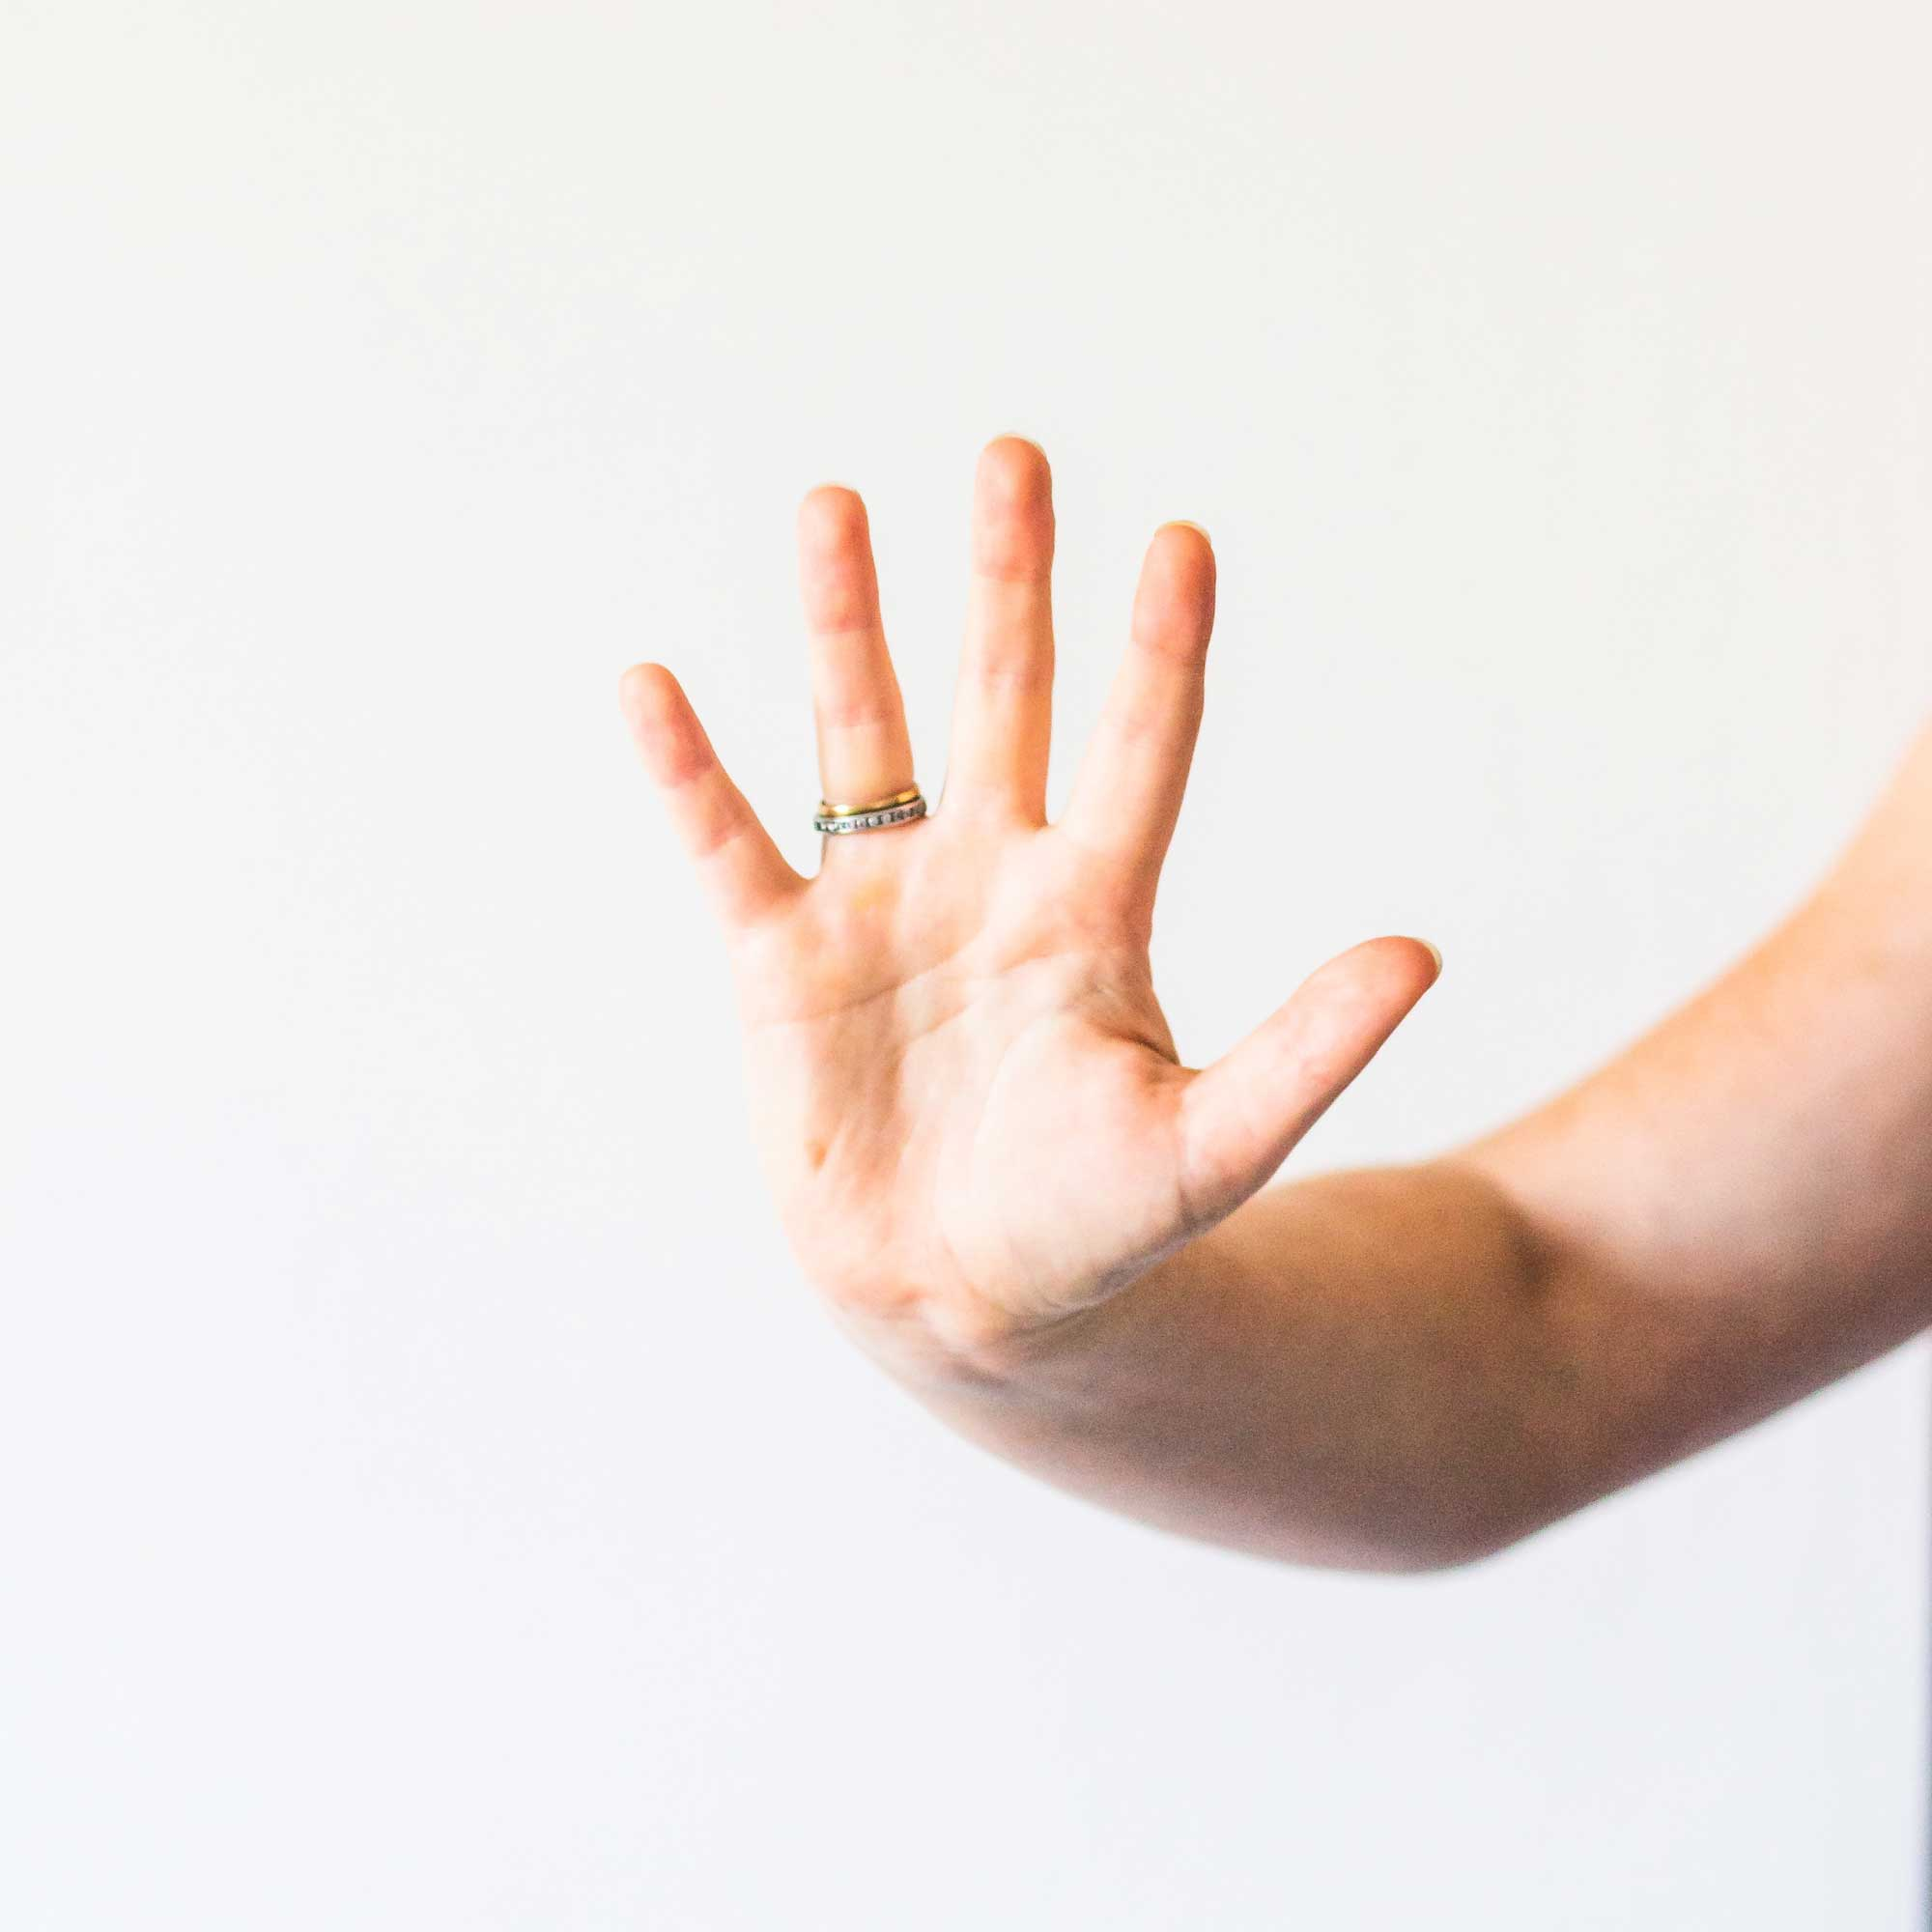 Person's palm with 5 fingers showing against white background